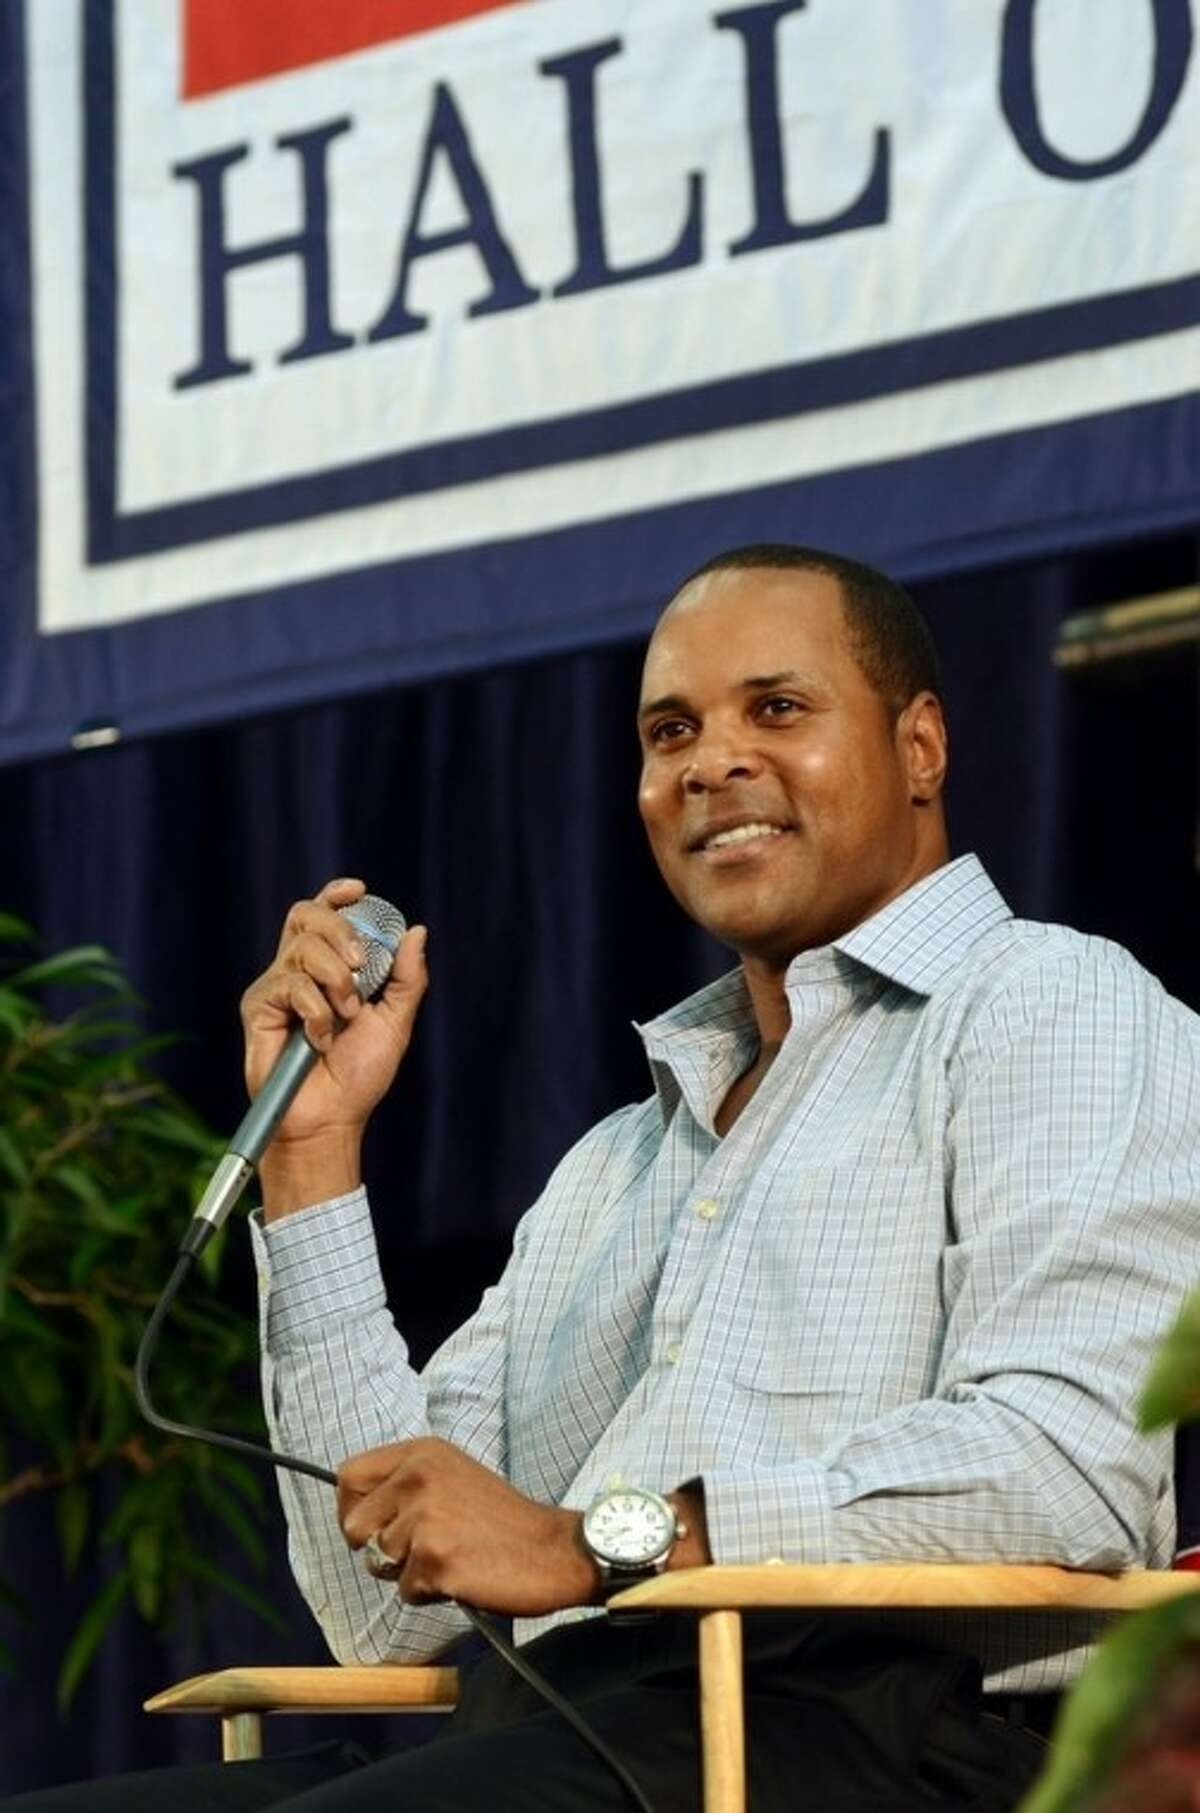 National Baseball Hall of Fame inductee Barry Larkin speaks at an inductee press conference at the Clark Sports Center in Cooperstown, N.Y., Saturday, July 21, 2012. Larkin will be inducted into baseball's Hall of Fame on Sunday. (AP photos/Heather Ainsworth)